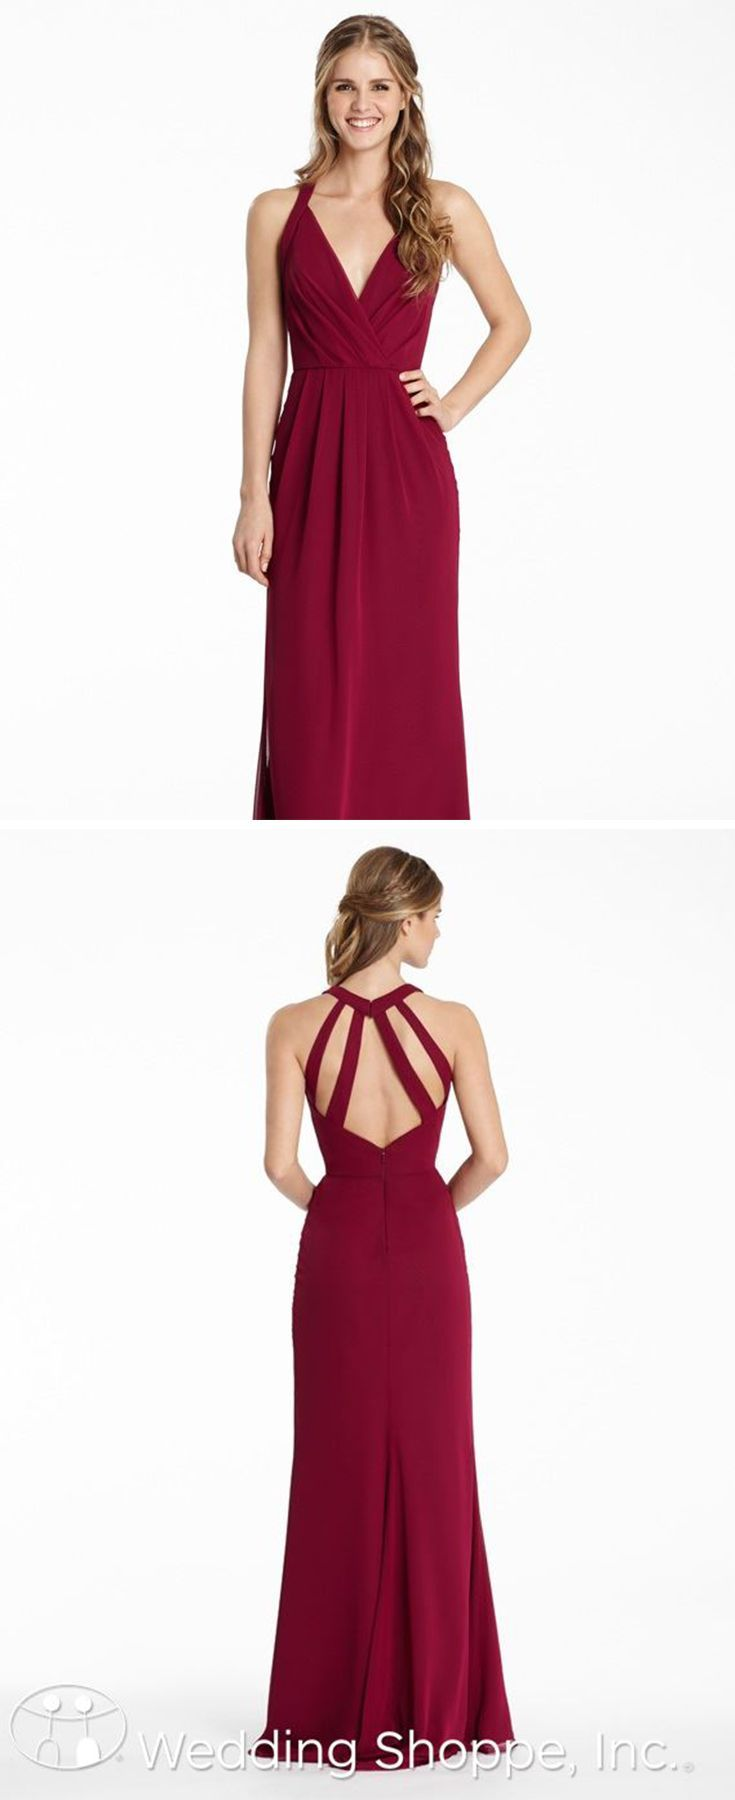 Hayley Paige Occasions Bridesmaid Dress 5550 | Chiffon bridesmaid ...